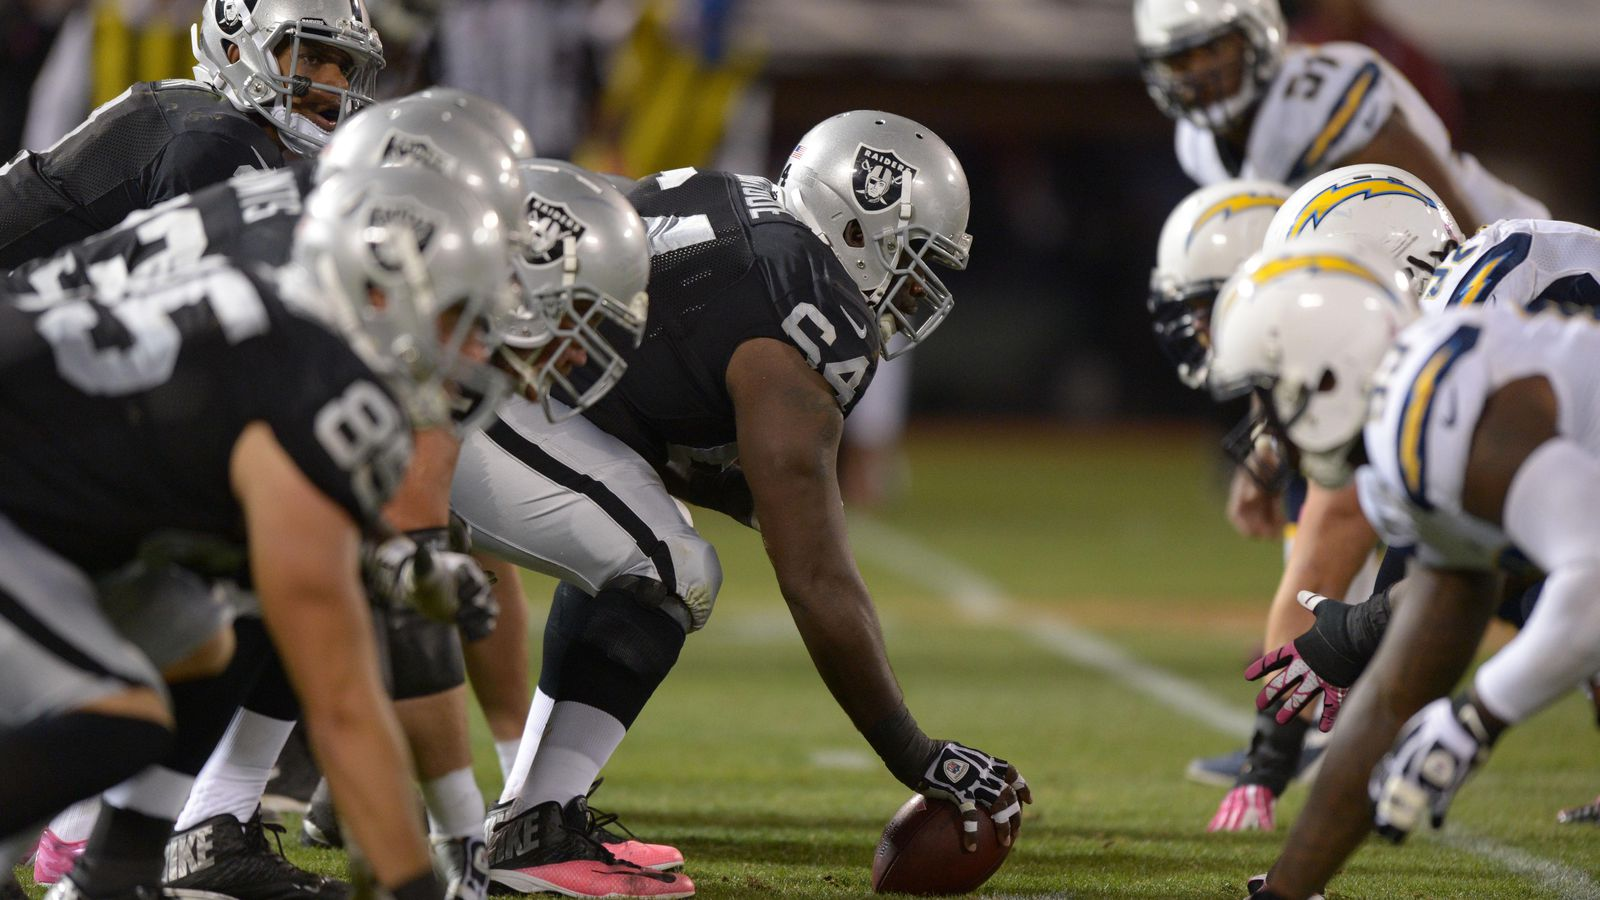 Raiders Vs Chargers Game Time Tv Schedule Online